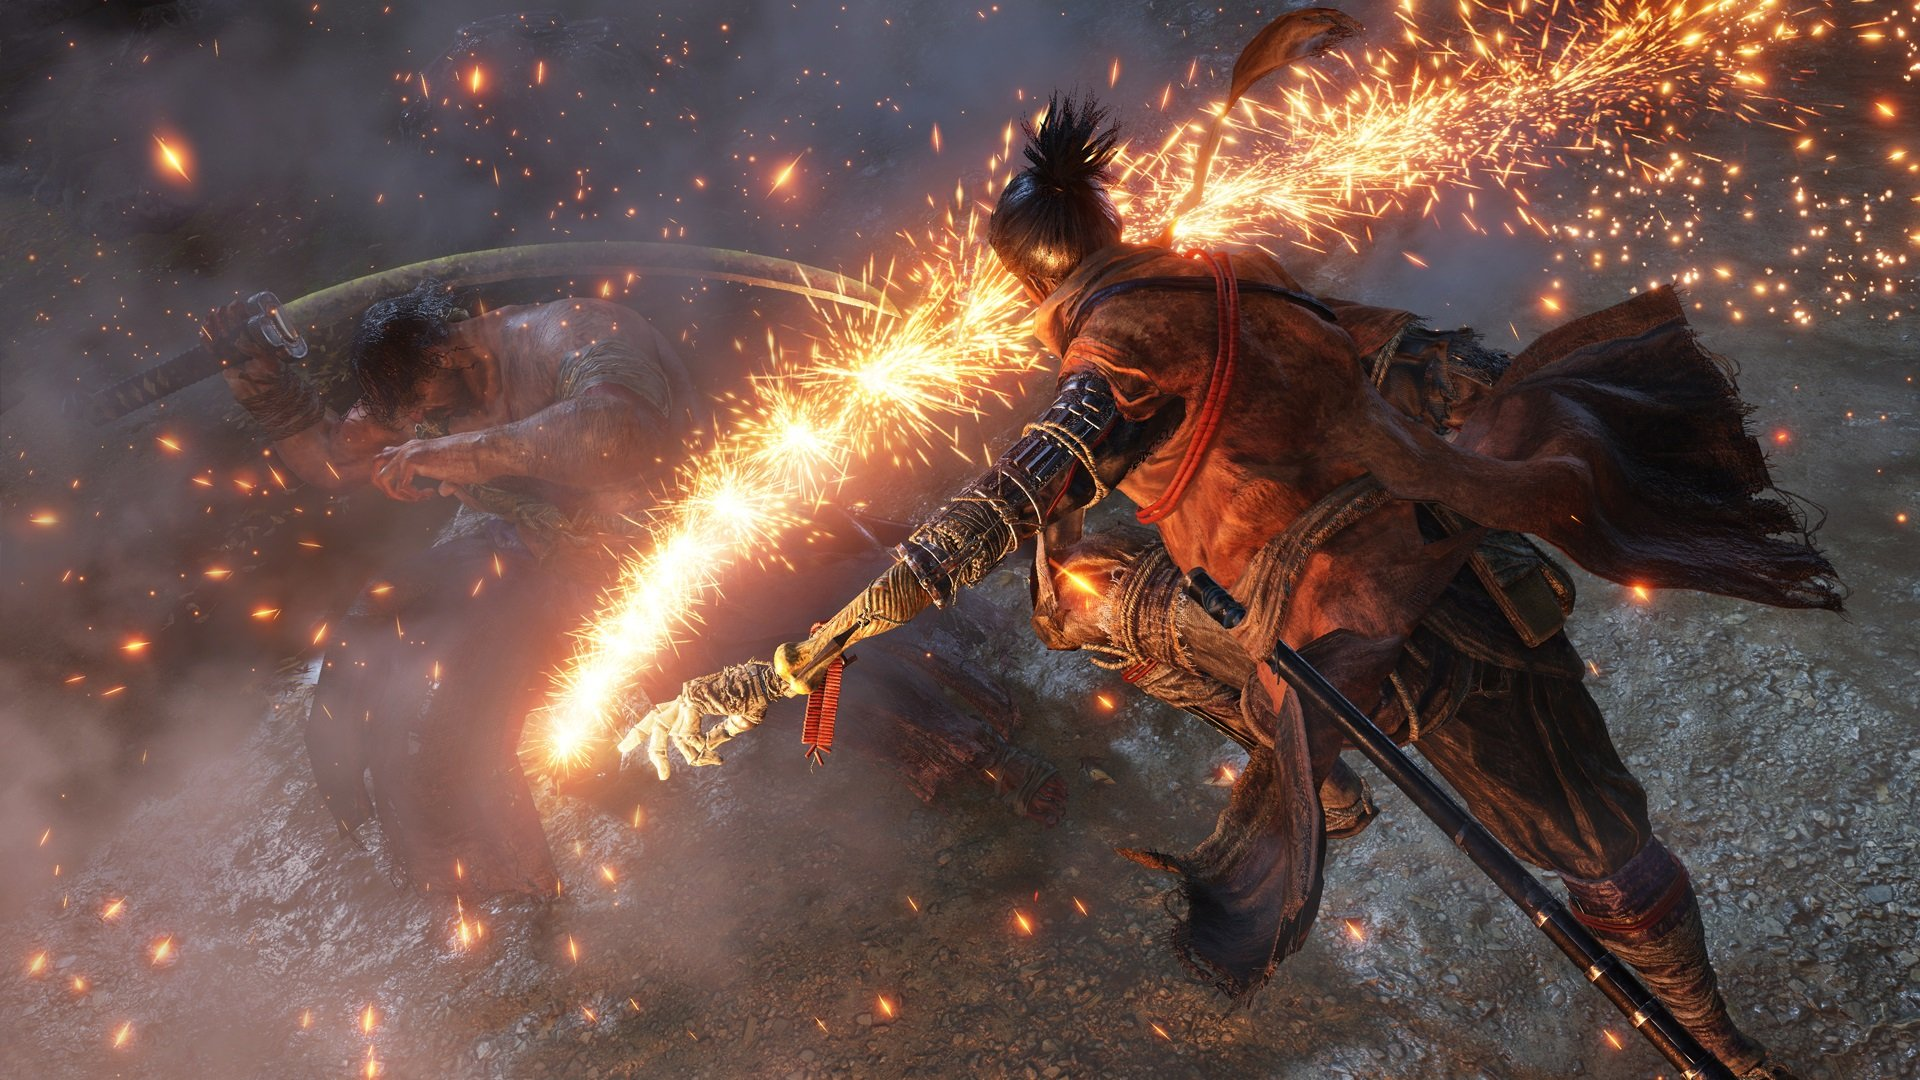 To defeat the Centipede Monks in Sekiro: Shadows Die Twice, you'll need to first acquire the Mortal Blade in Senpou Temple.